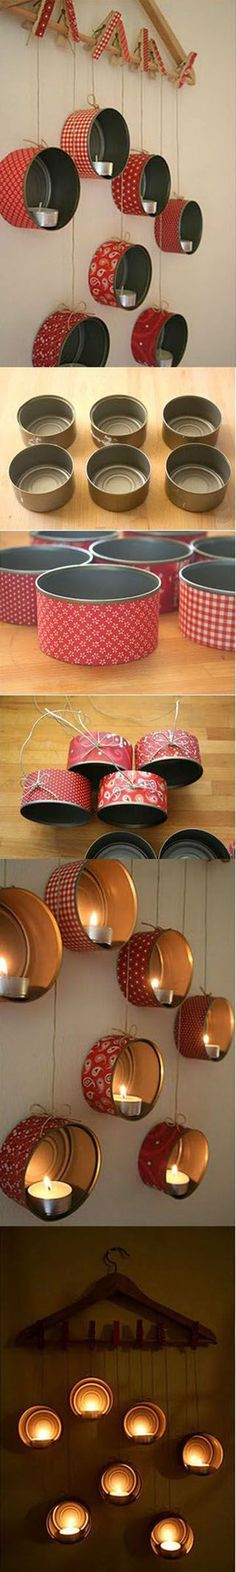 do it yourself crafts - Diy-Selbermachen Creative Crafts, Easy Crafts, Diy And Crafts, Diy Projects To Try, Craft Projects, Craft Ideas, Diy Ideas, Creation Deco, Do It Yourself Crafts